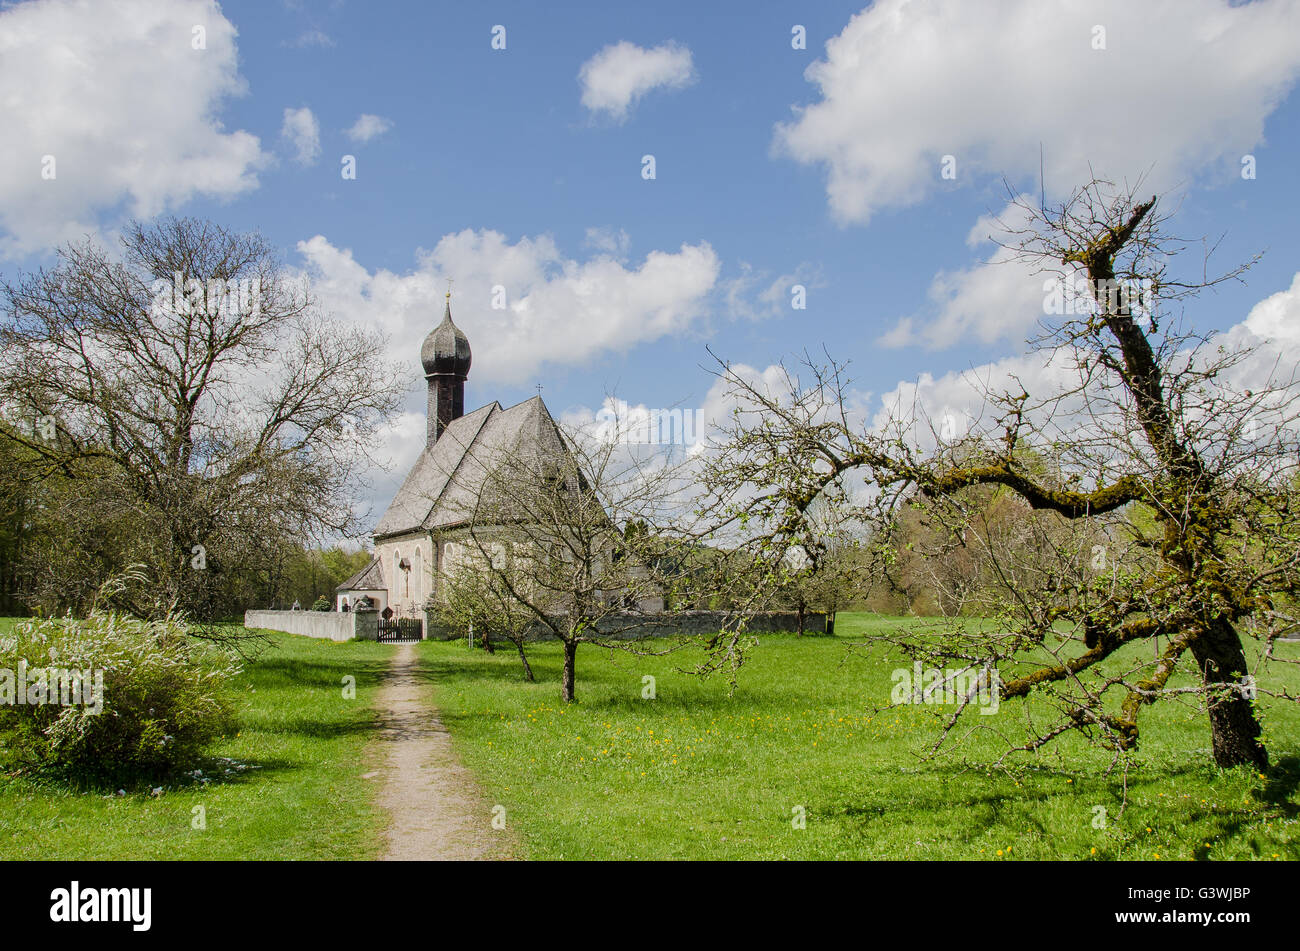 Typically Bavarian - white and blue sky and a bulbous spire! - Stock Image